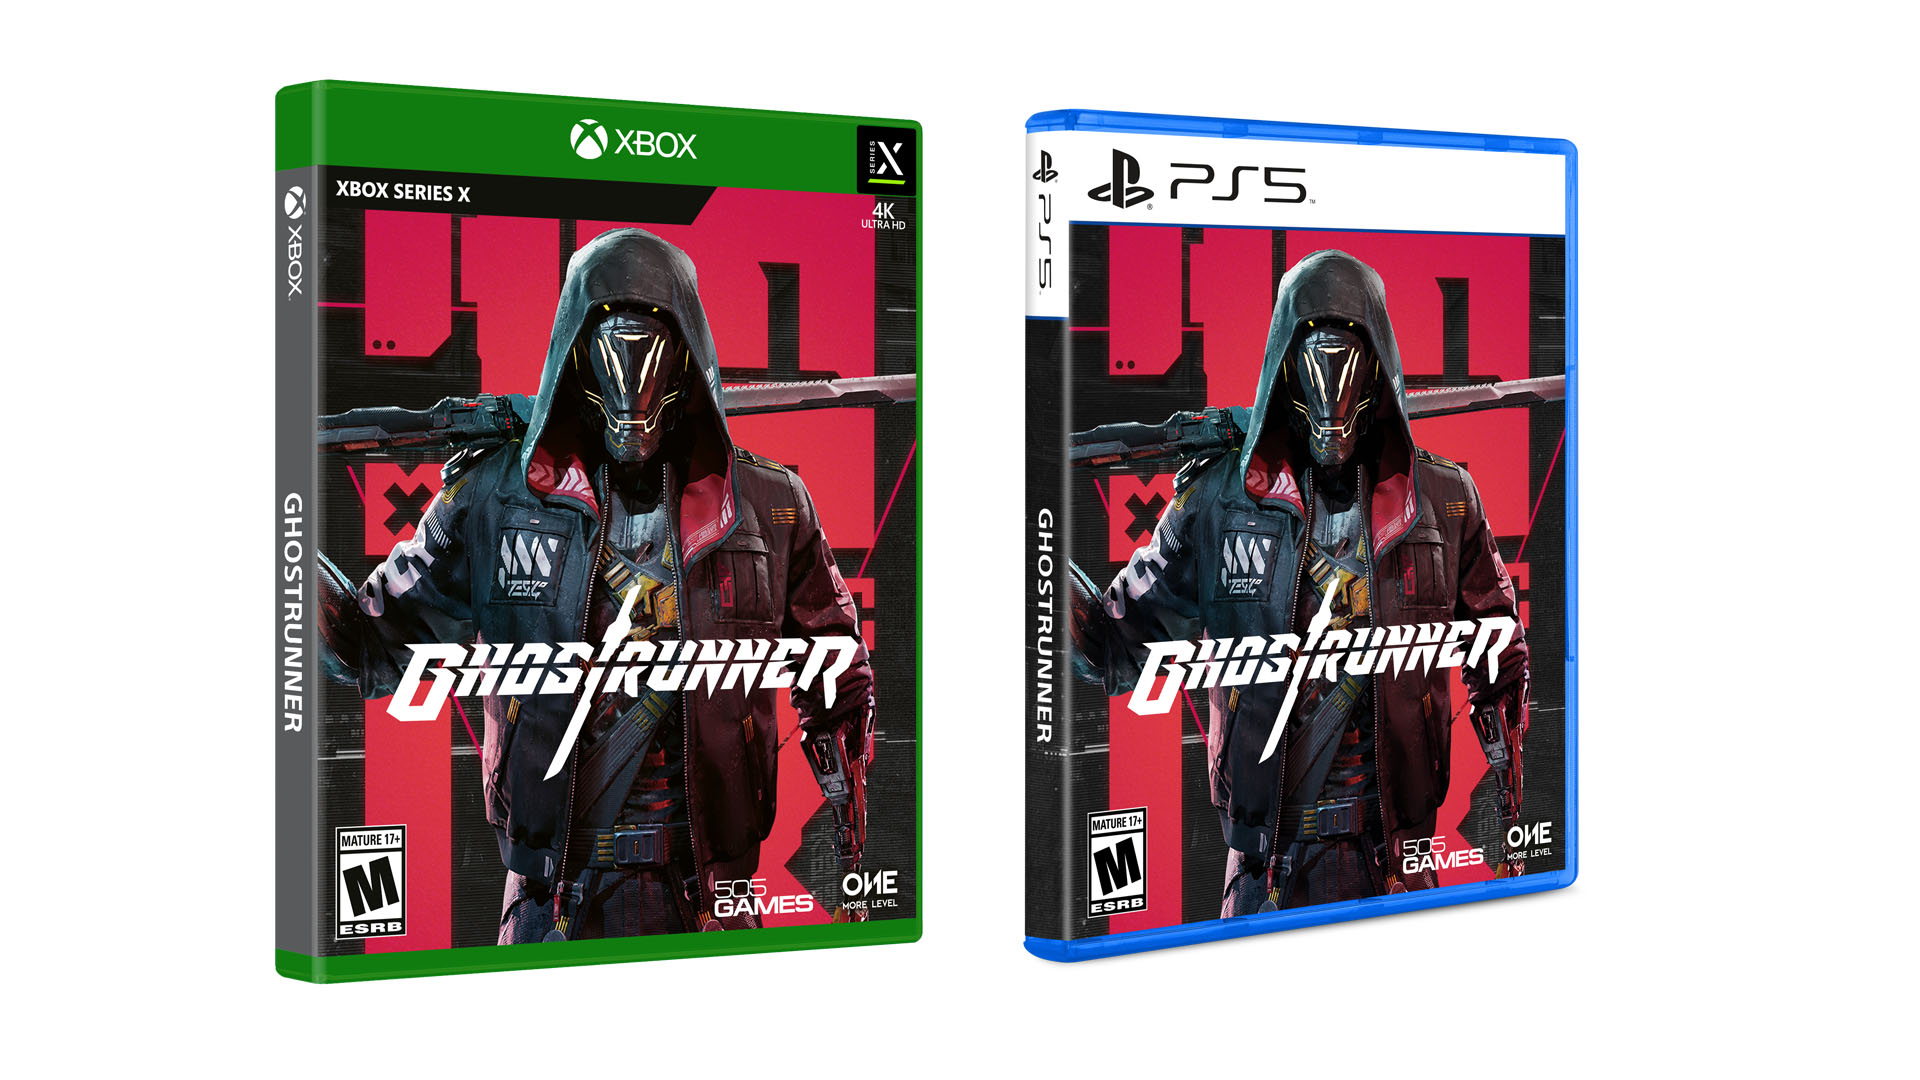 Ghostrunner Xbox Series X|S and PS5 Ports Launch September 28